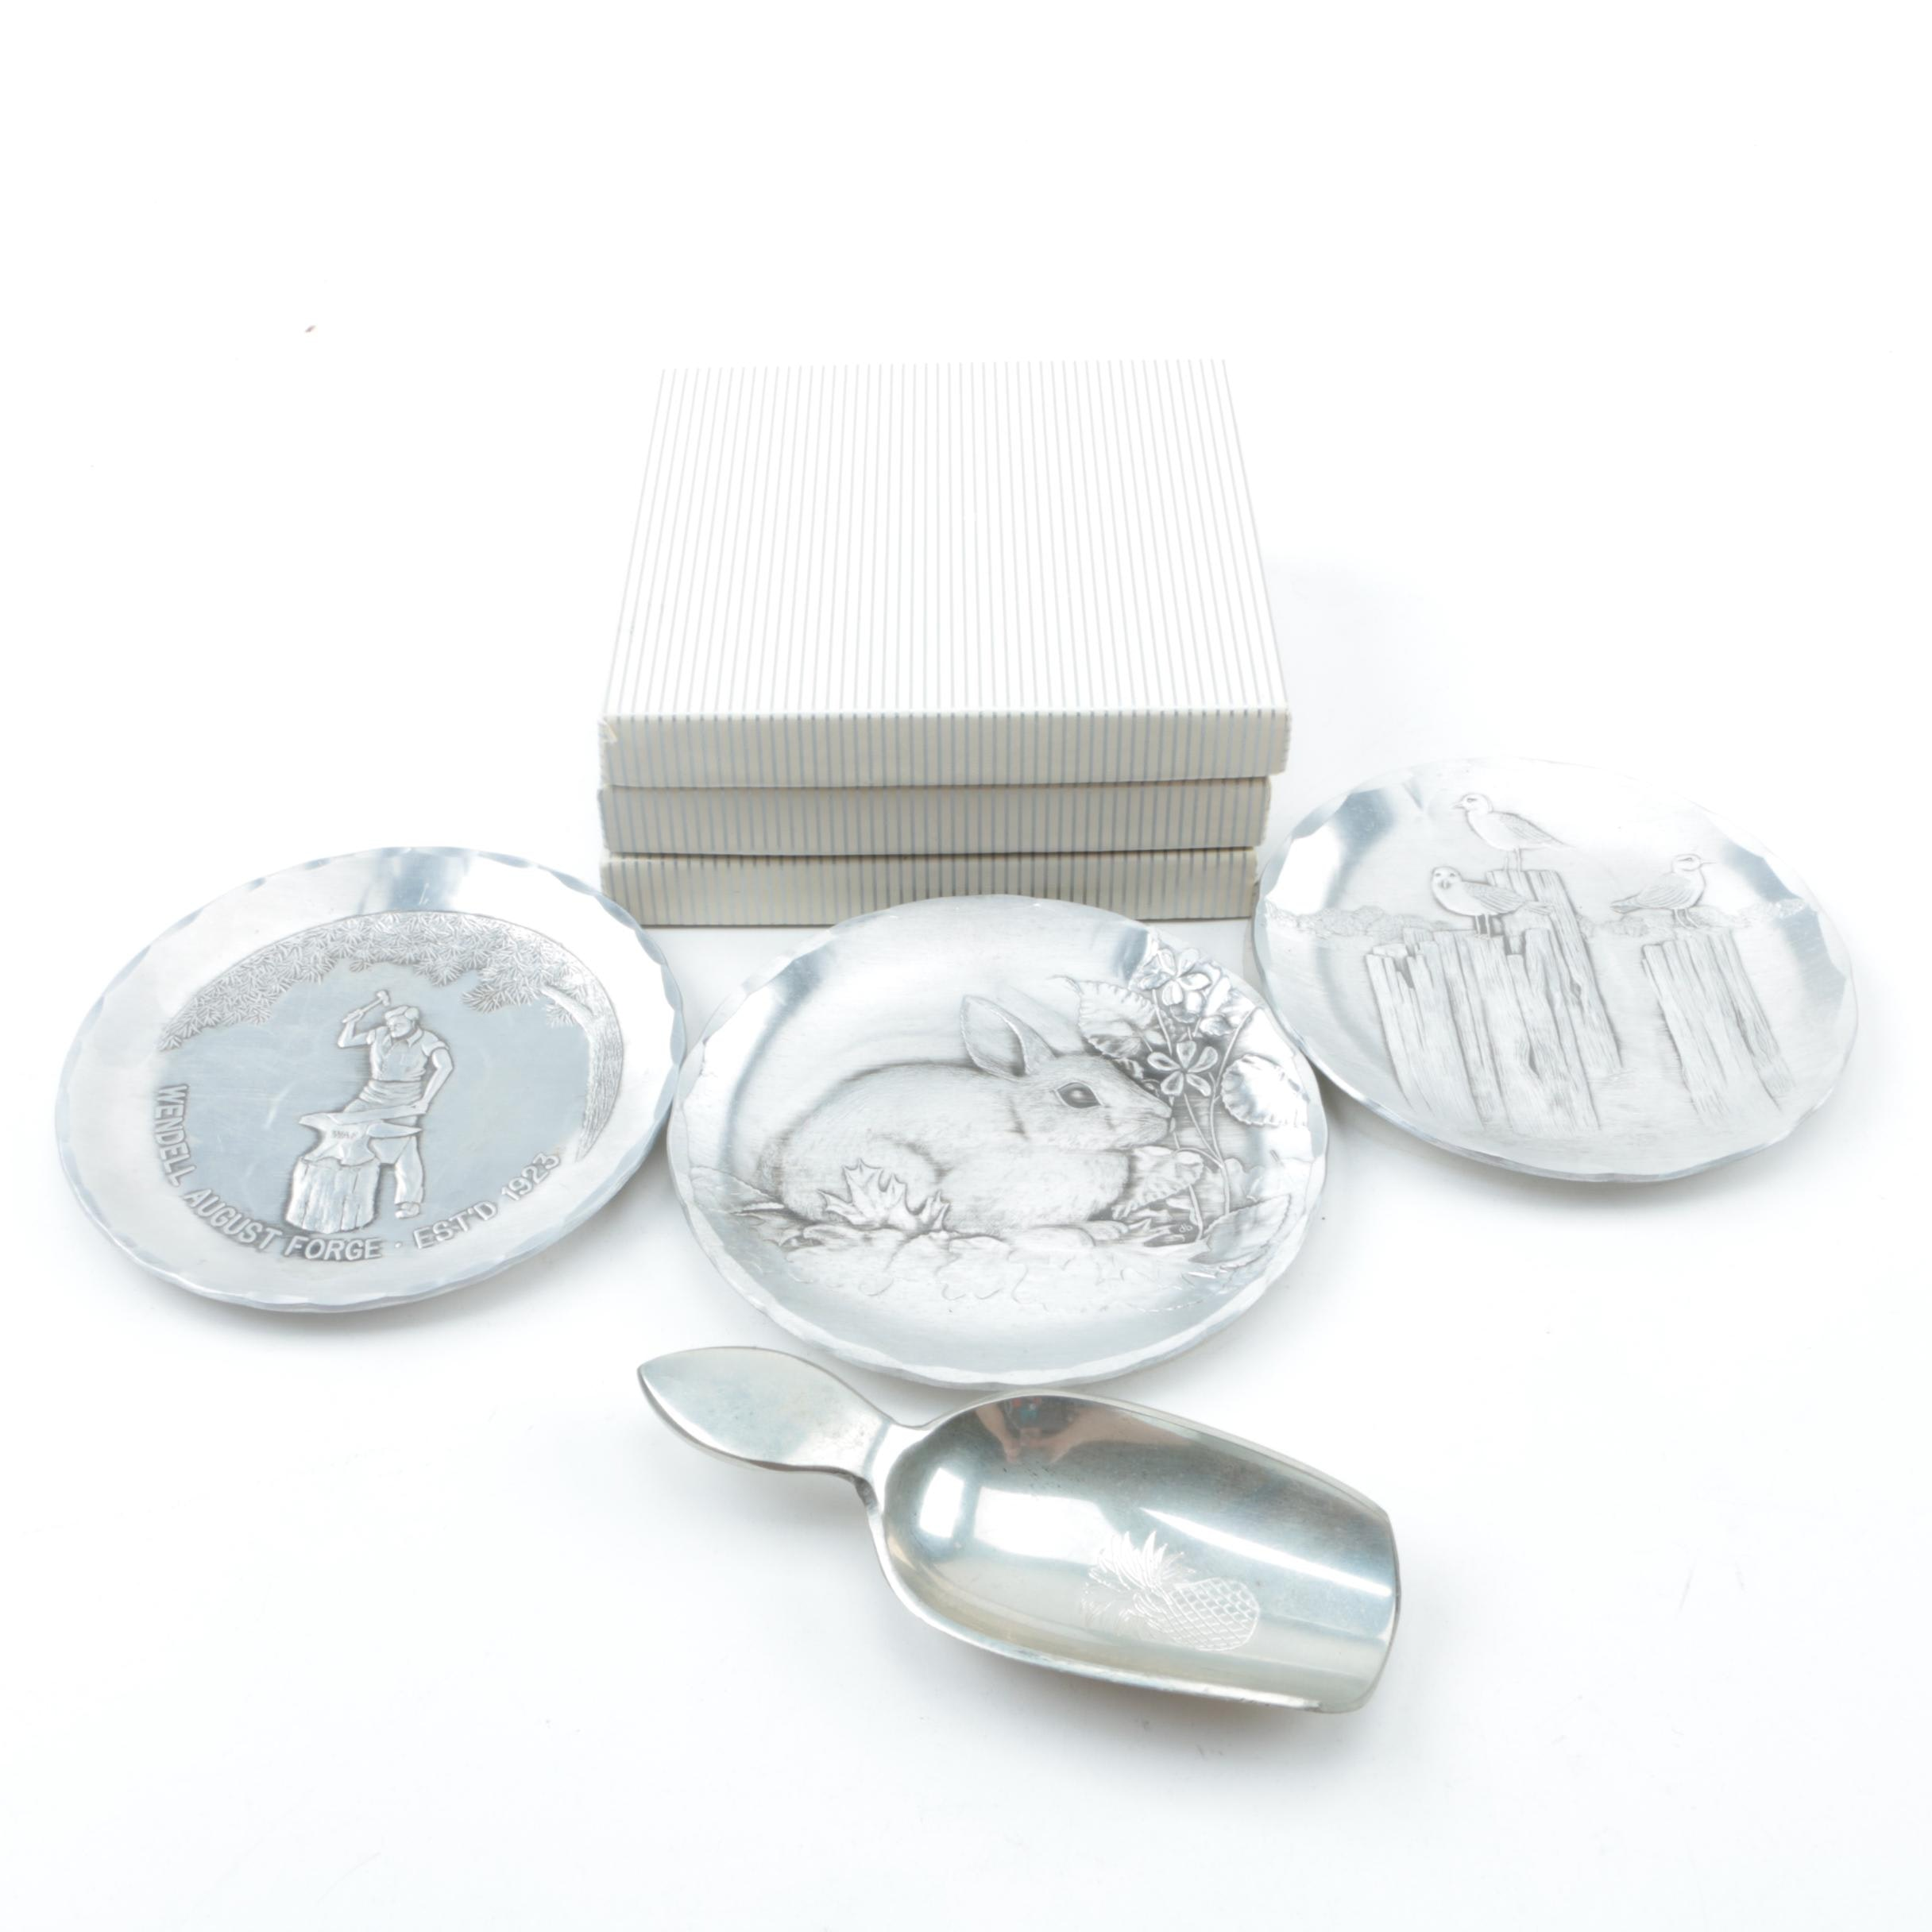 Wendell August Forge Pewter Plates and Stieff Pewter Scoop